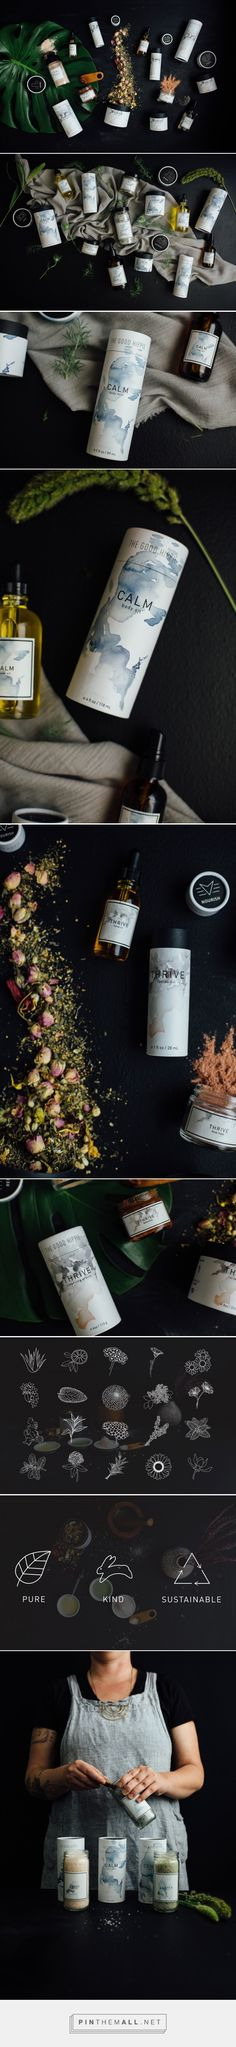 The Good Hippie: Artisan Skincare + Beauty - Packaging of the World - Creative… Skincare Packaging, Cosmetic Packaging, Beauty Packaging, Hippie Party, Label Design, Branding Design, Package Design, Graphic Design, Types Of Packaging